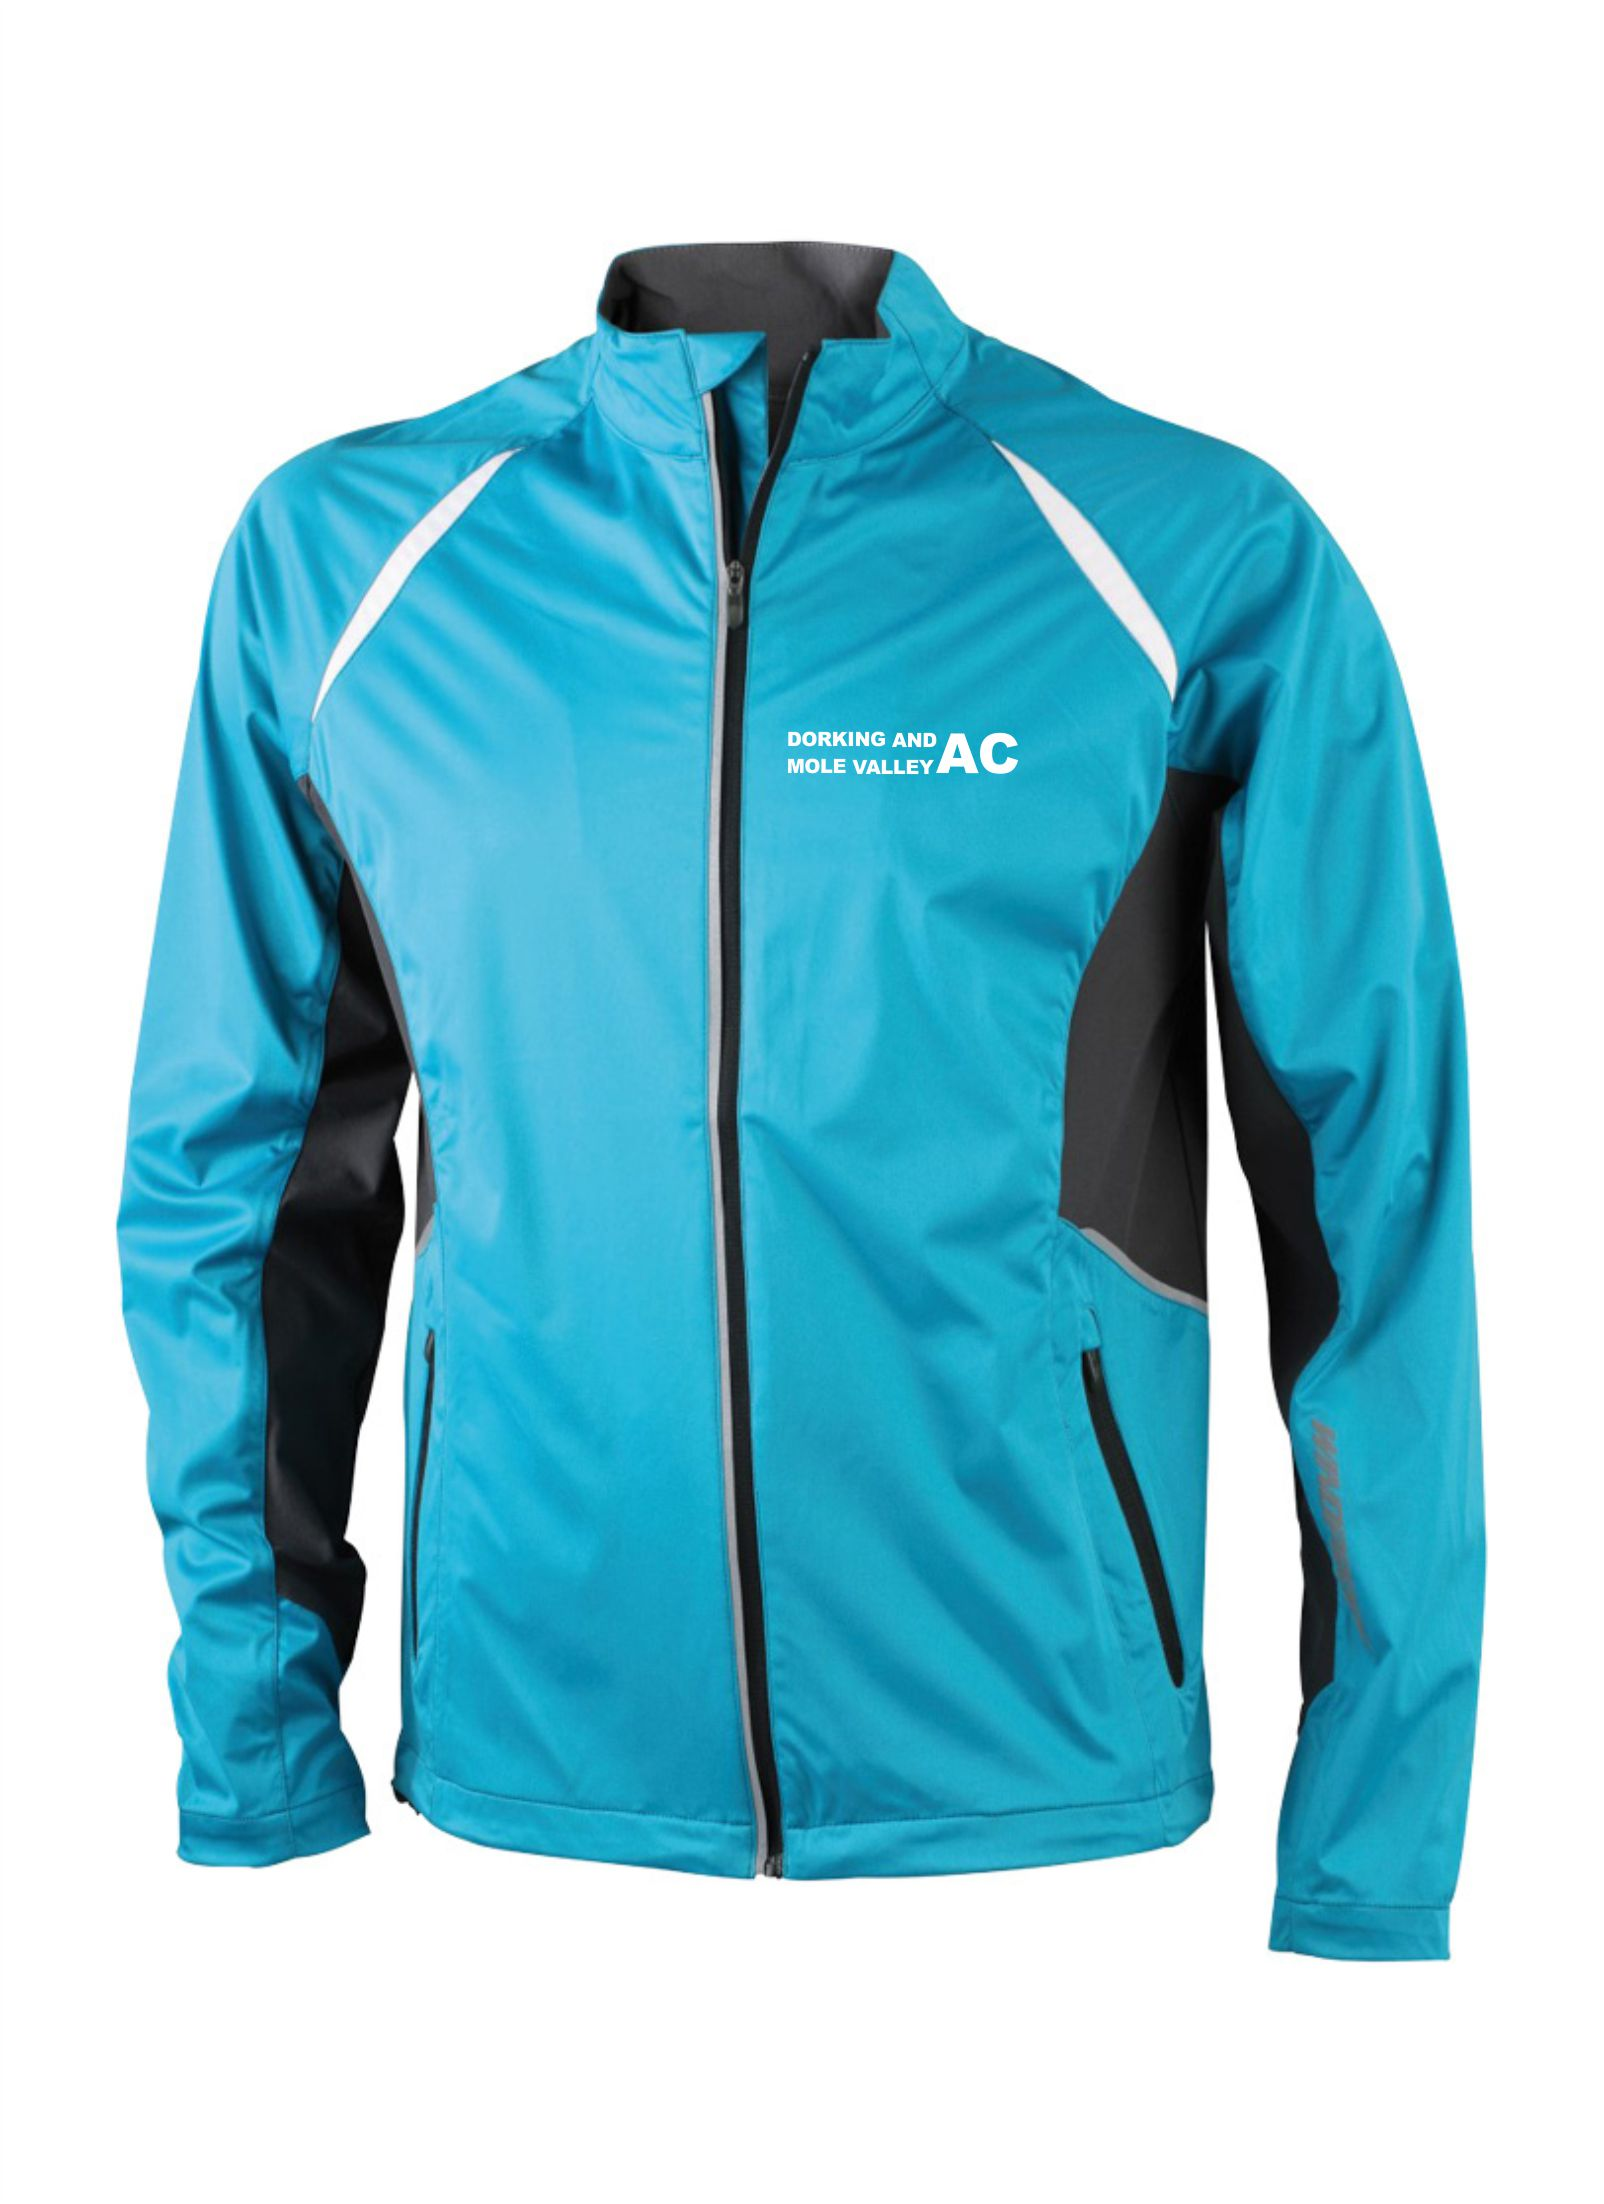 How to Choose My Cycling Jacket?